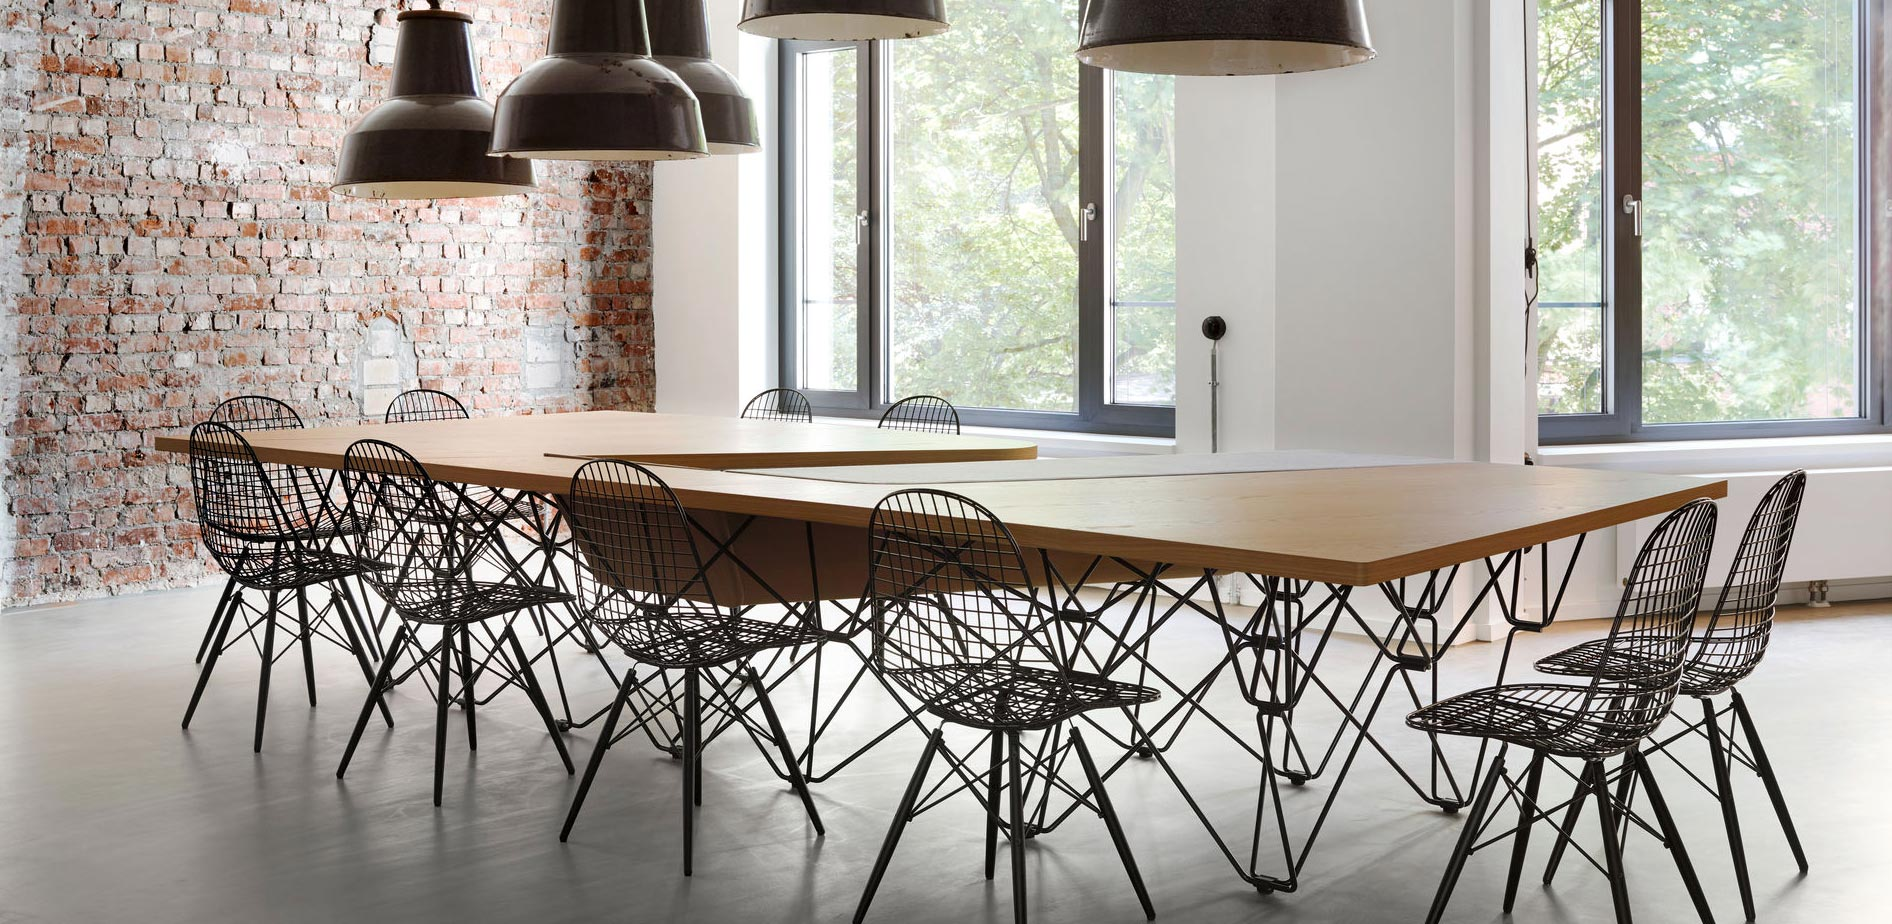 Vitra Eames Wire Chair DKW Lifestyle Image